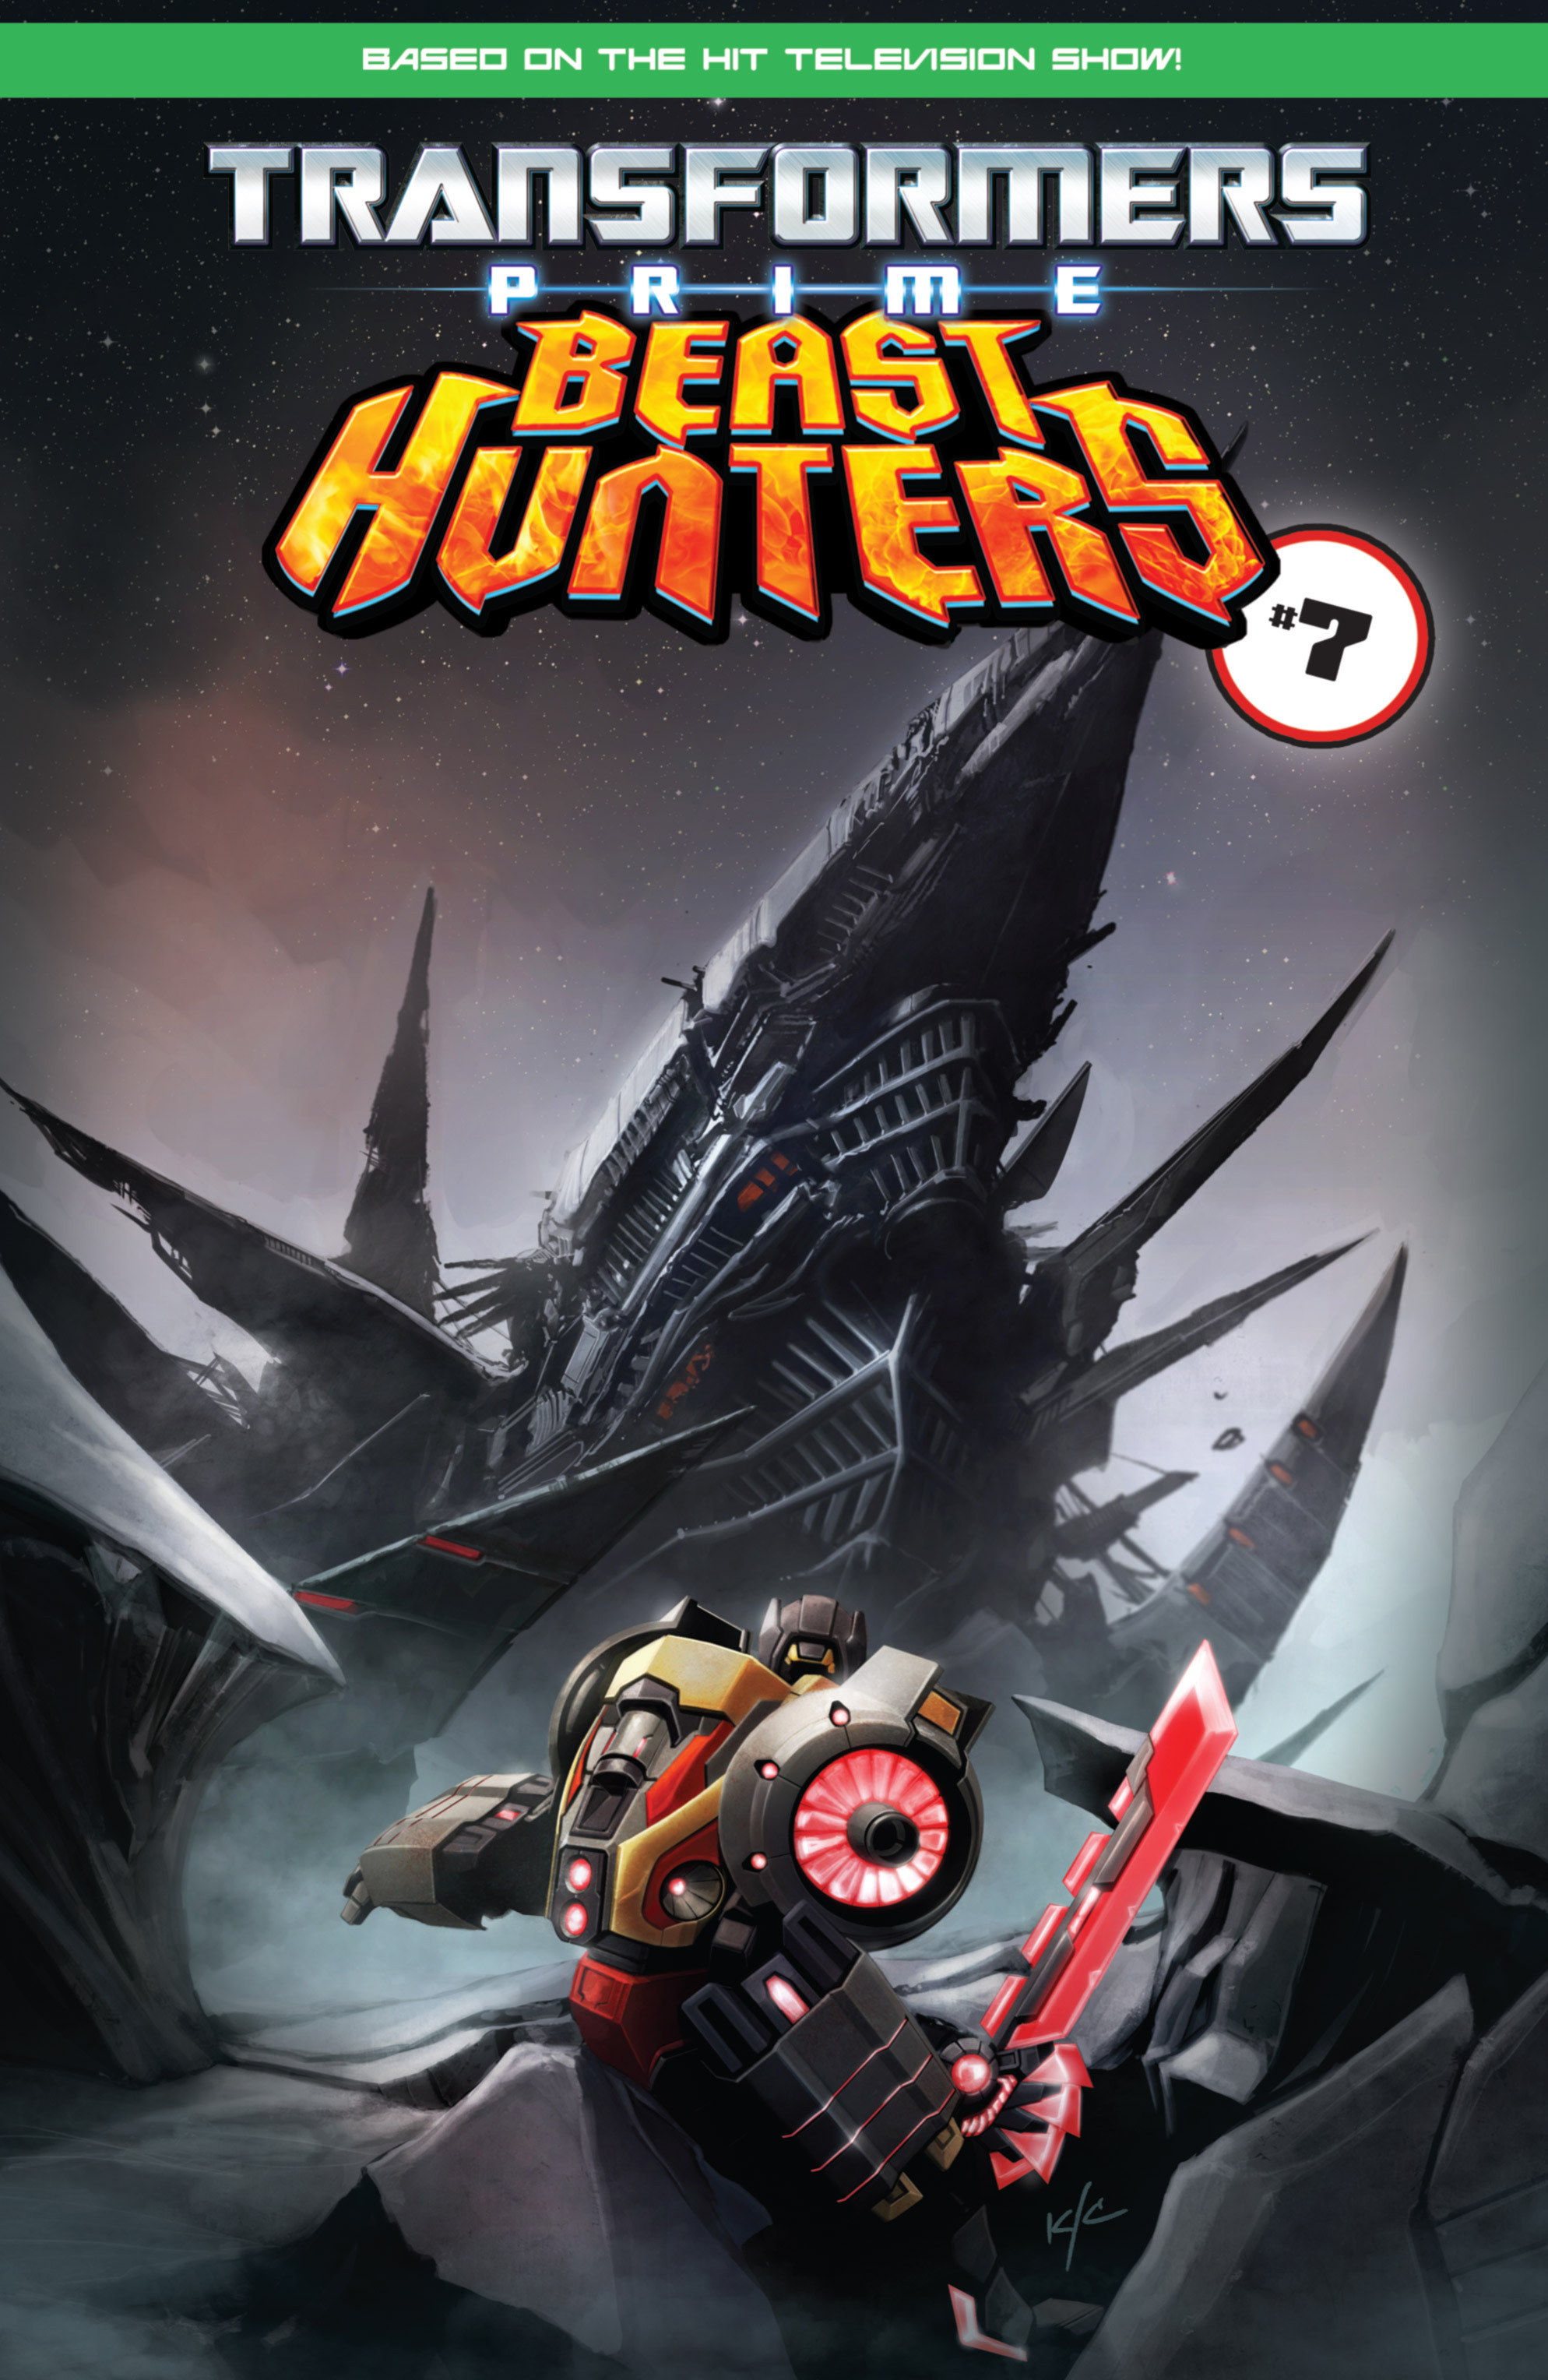 Read online Transformers Prime: Beast Hunters comic -  Issue #6 - 25